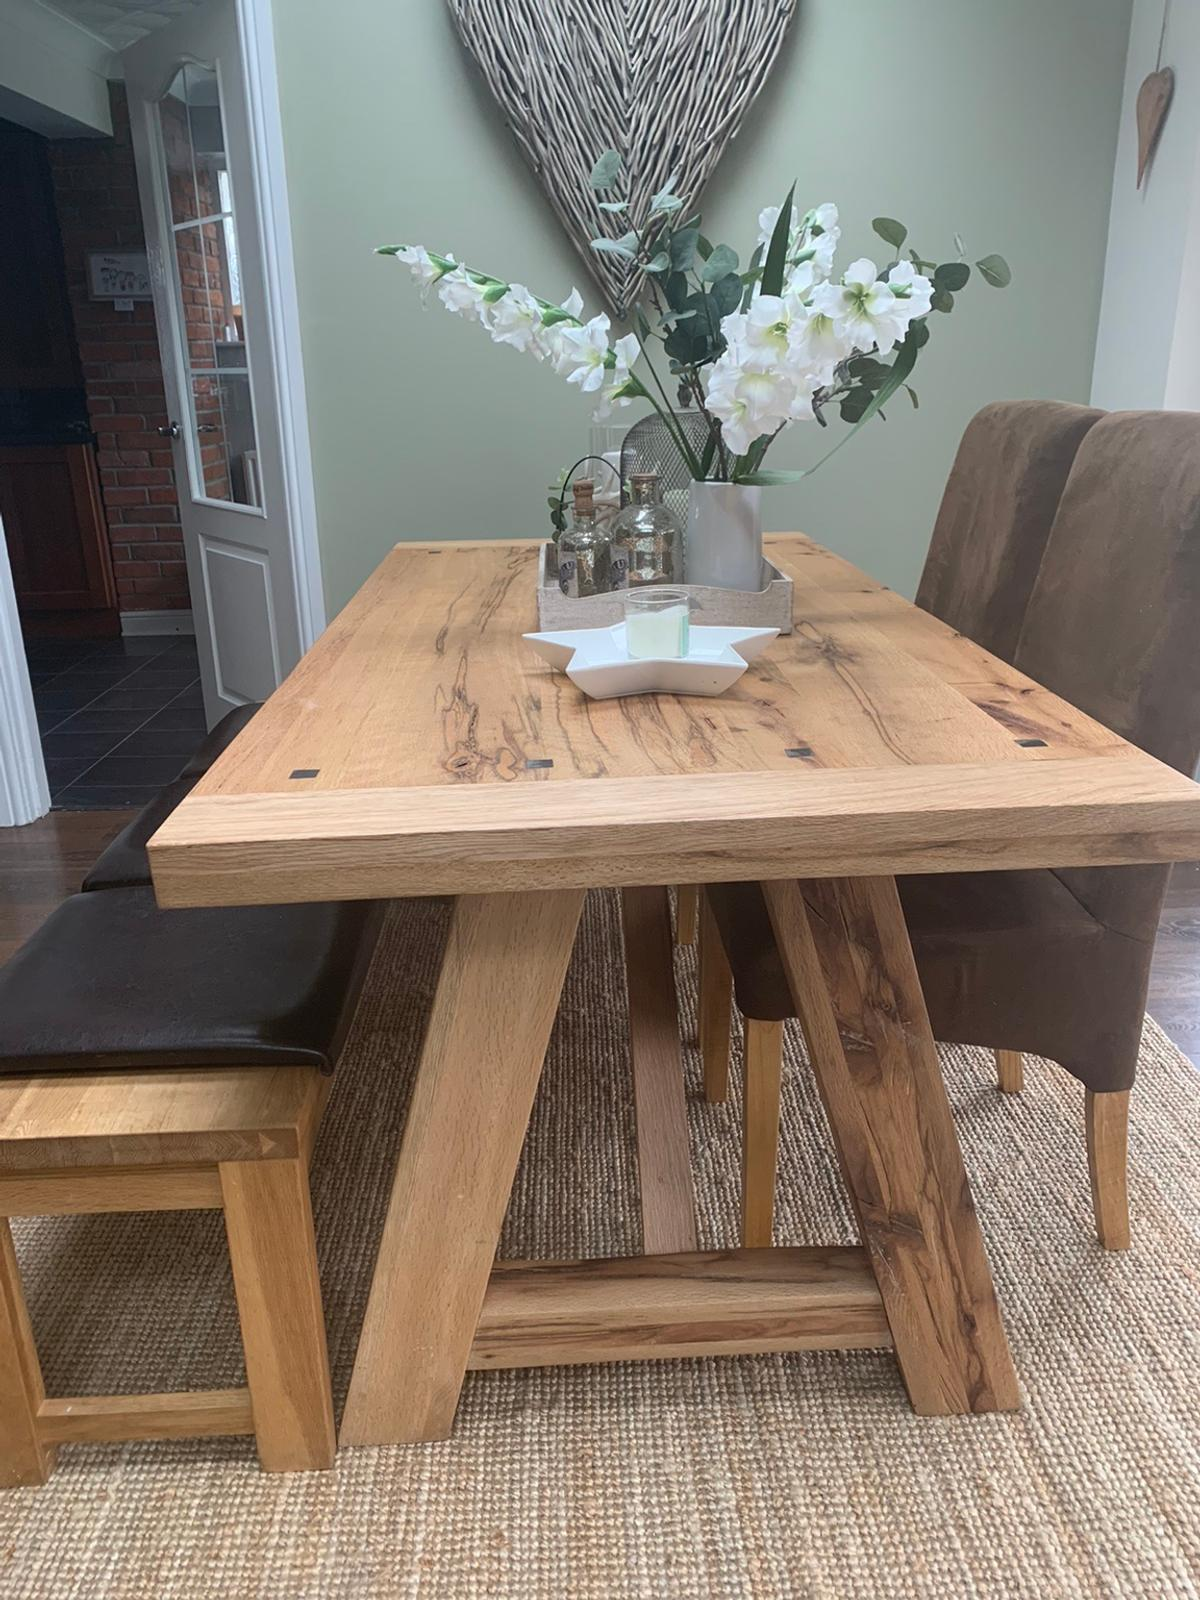 Barker stonehouse dining table bench chairs in TS5 ...